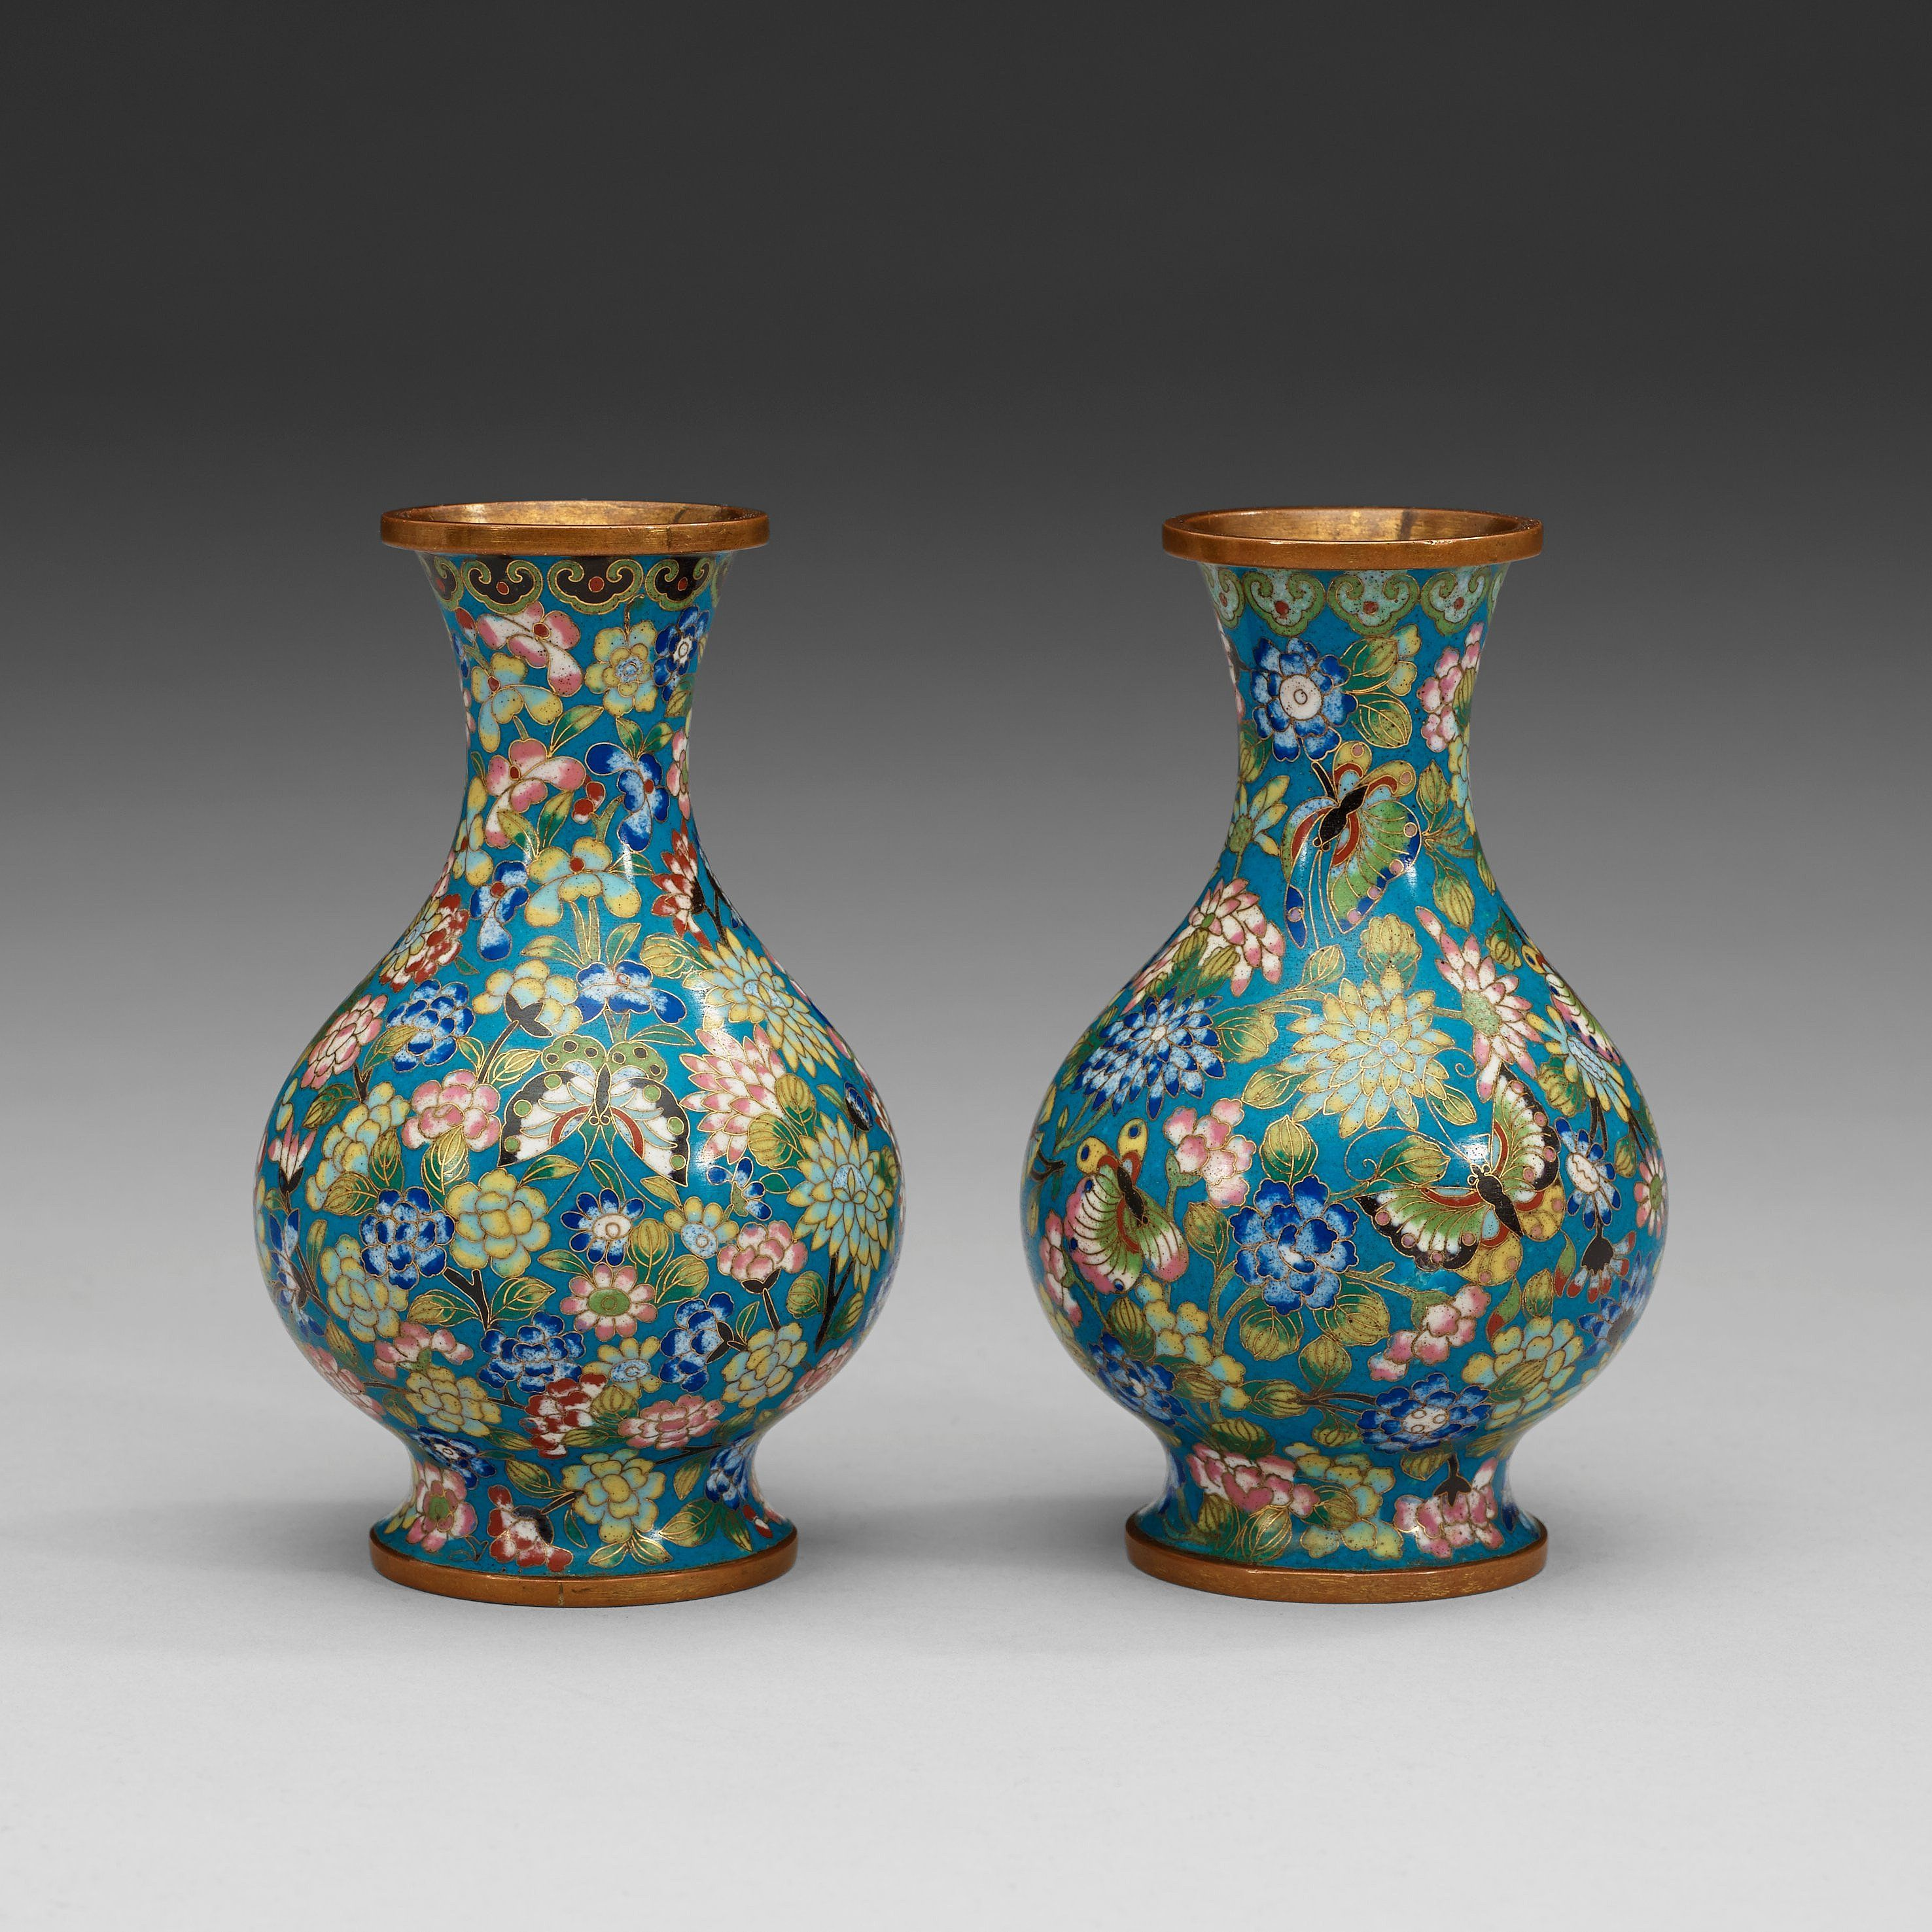 A pair of cloisonn vases late qing dynasty circa 1900 a pair of cloisonn vases late qing dynasty circa bukowskis reviewsmspy